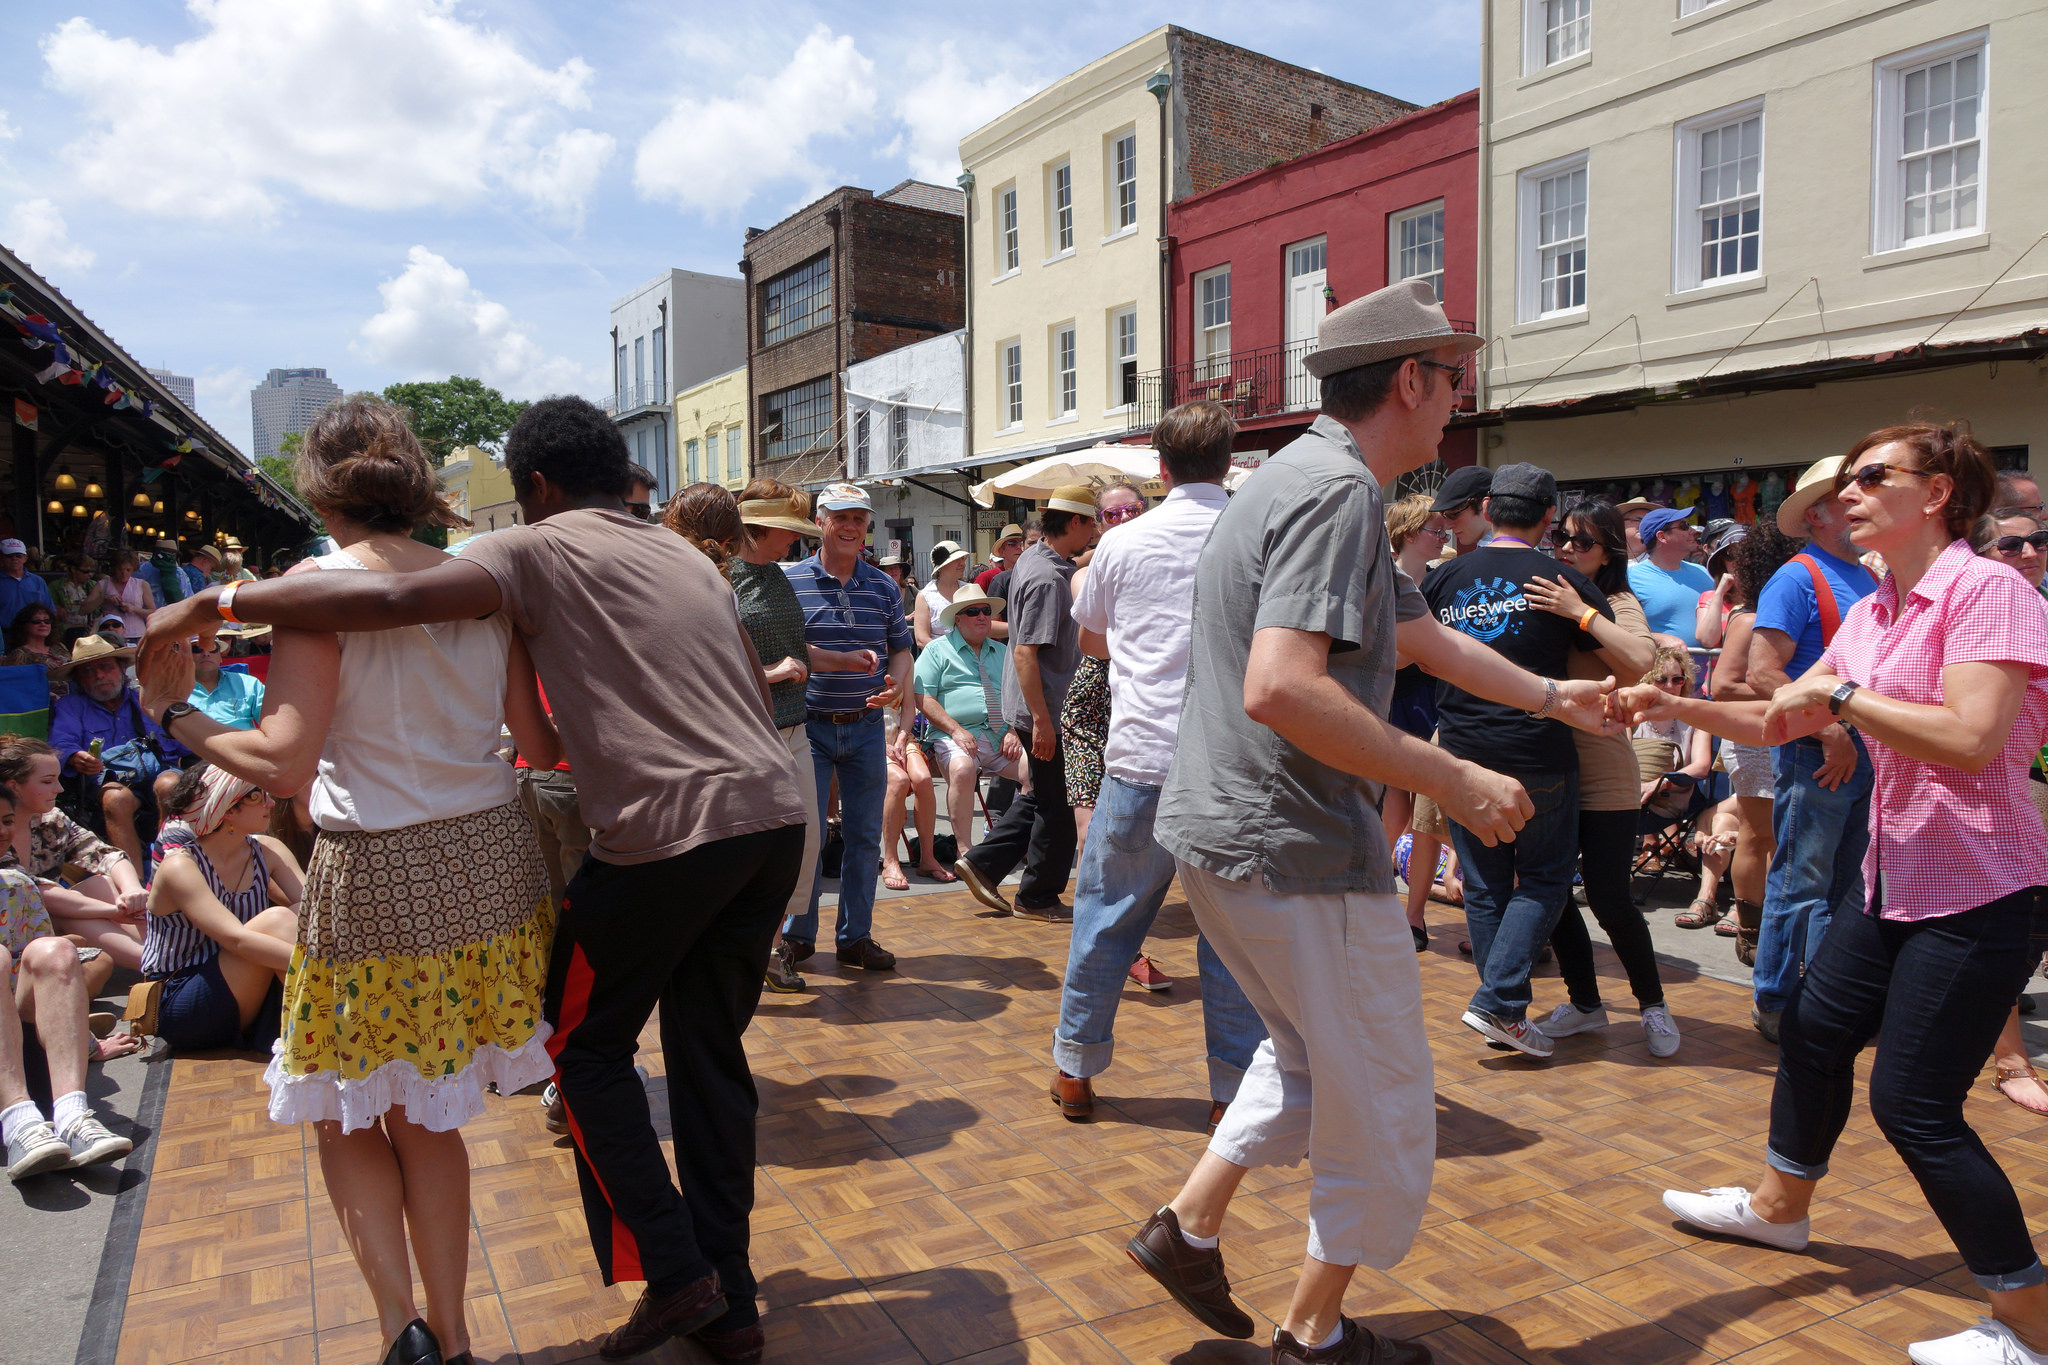 Swing dancing at French Quarter Festival. (Photo: Paul Broussard)